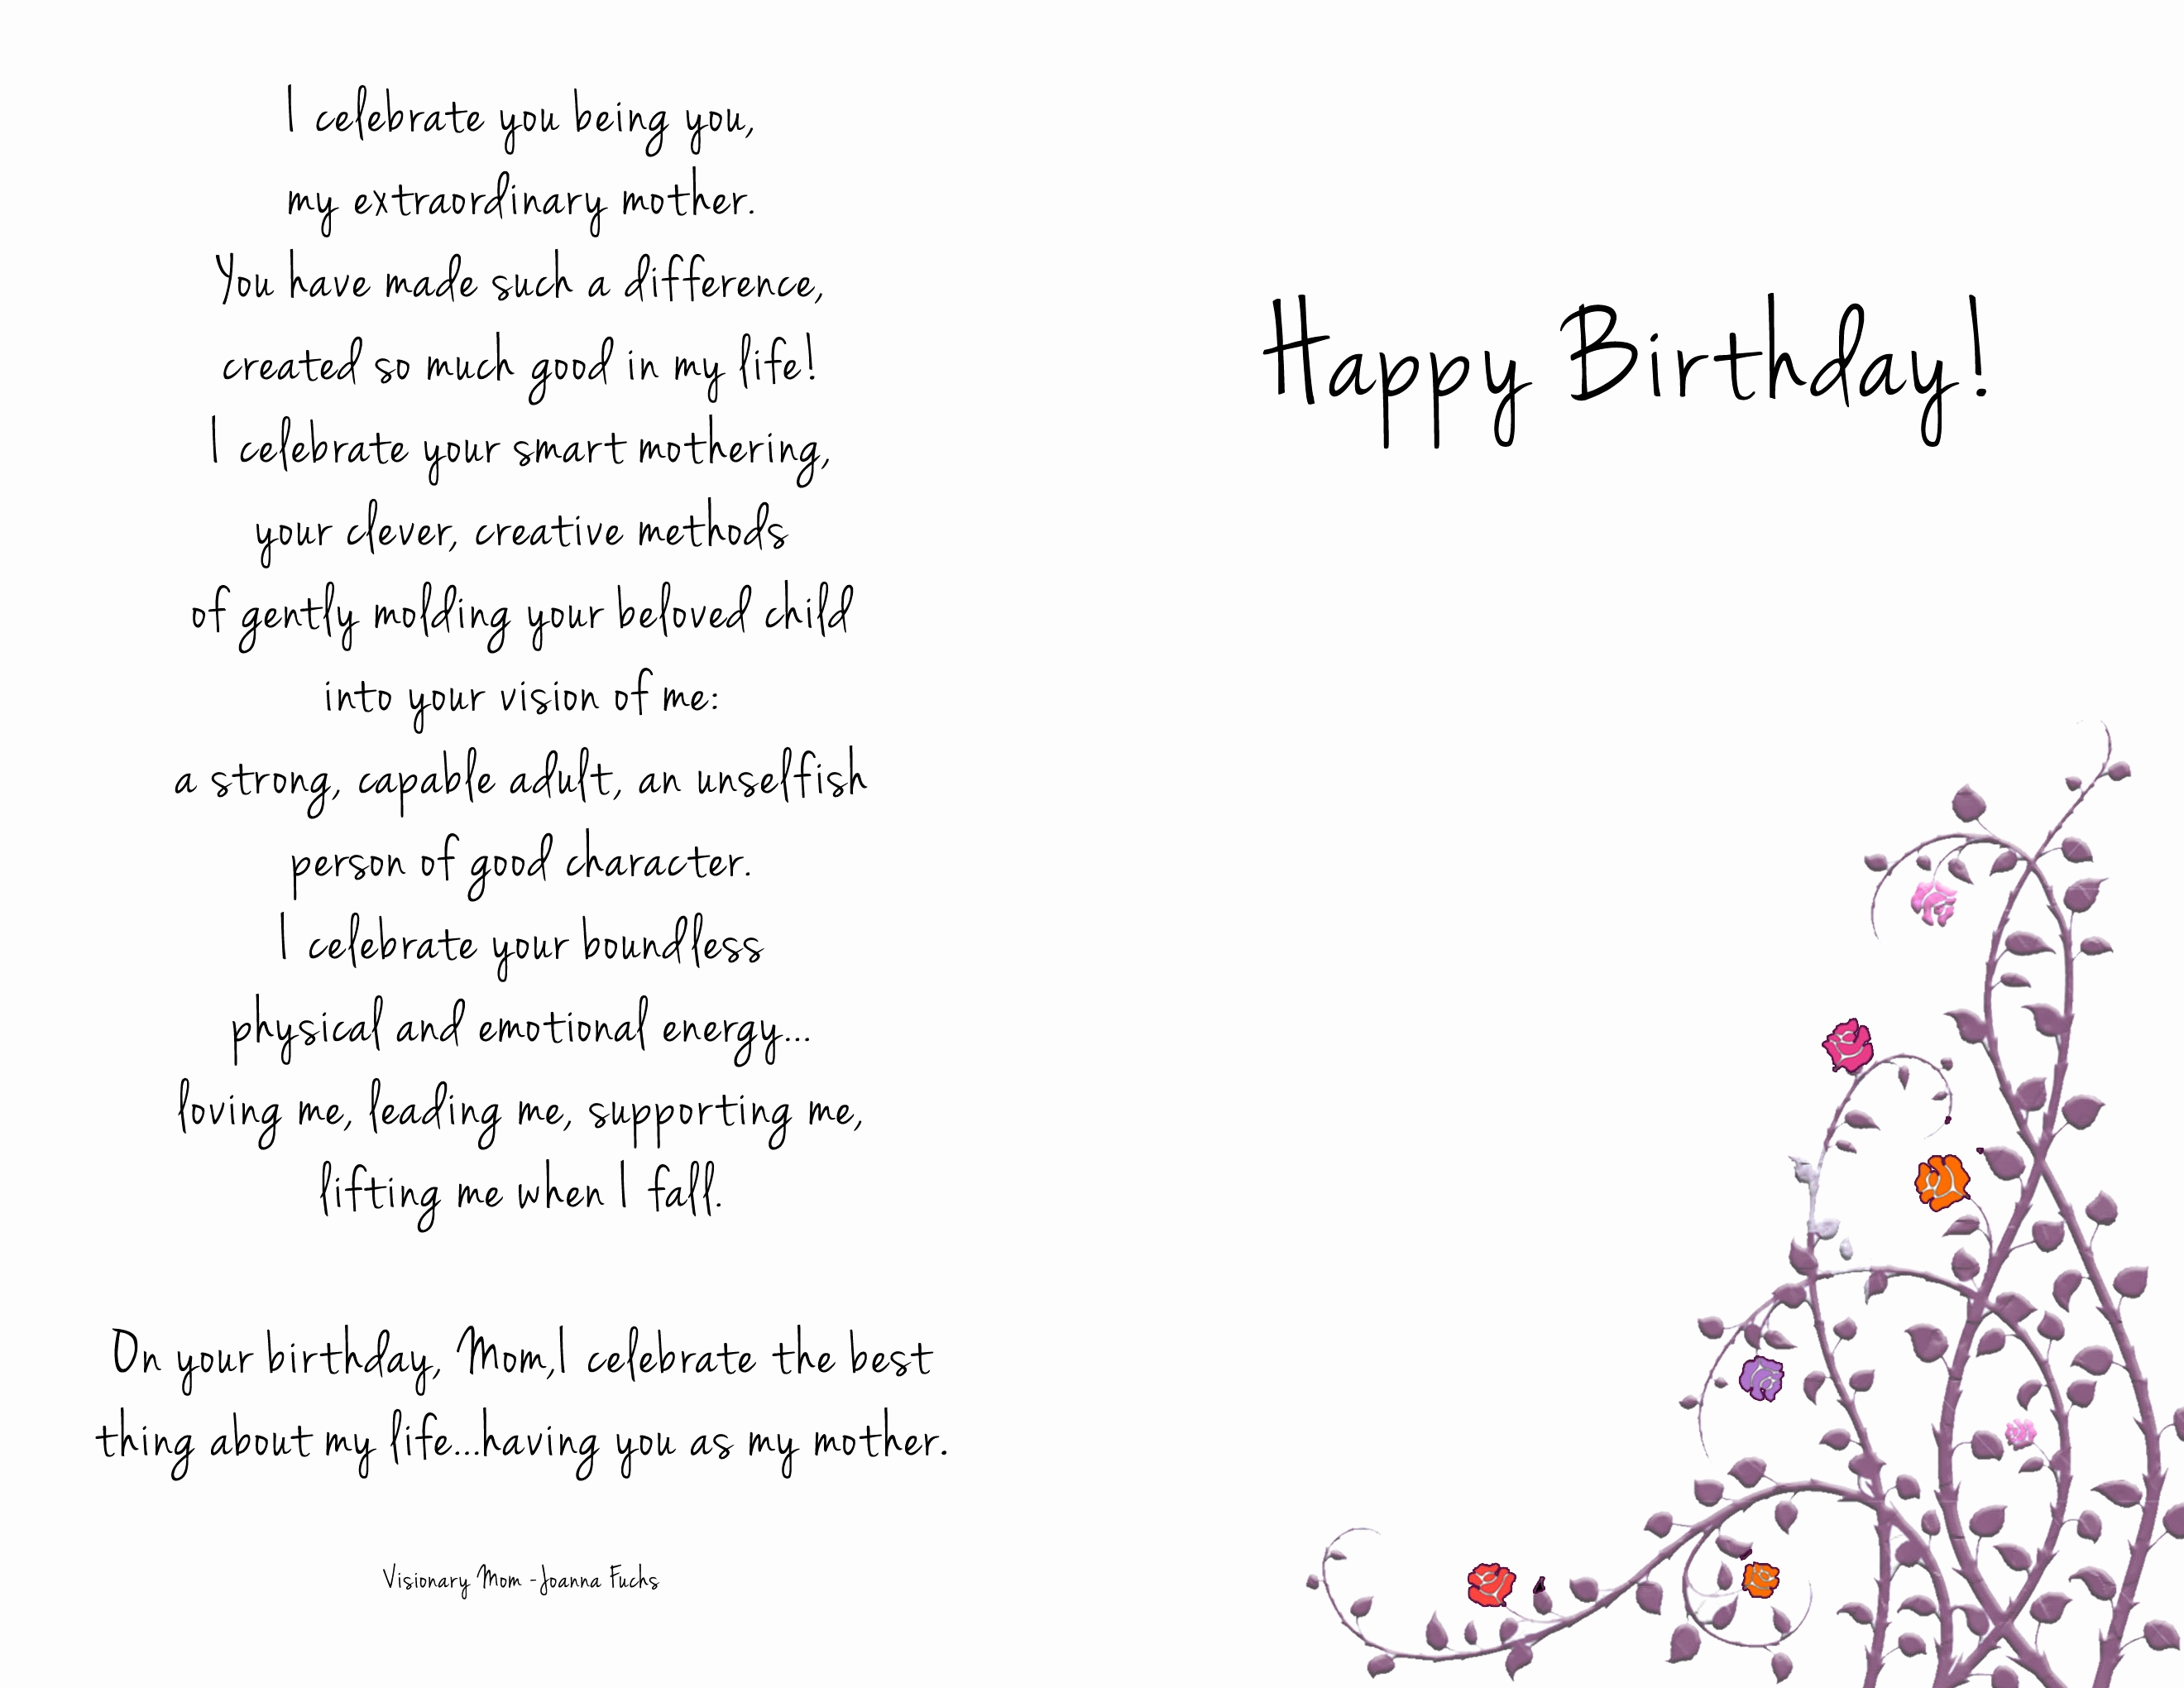 50th birthday card messages for husband ; 50th-birthday-card-messages-elegant-mom-card-back-2640c2972040-happy-birthday-80-year-of-50th-birthday-card-messages